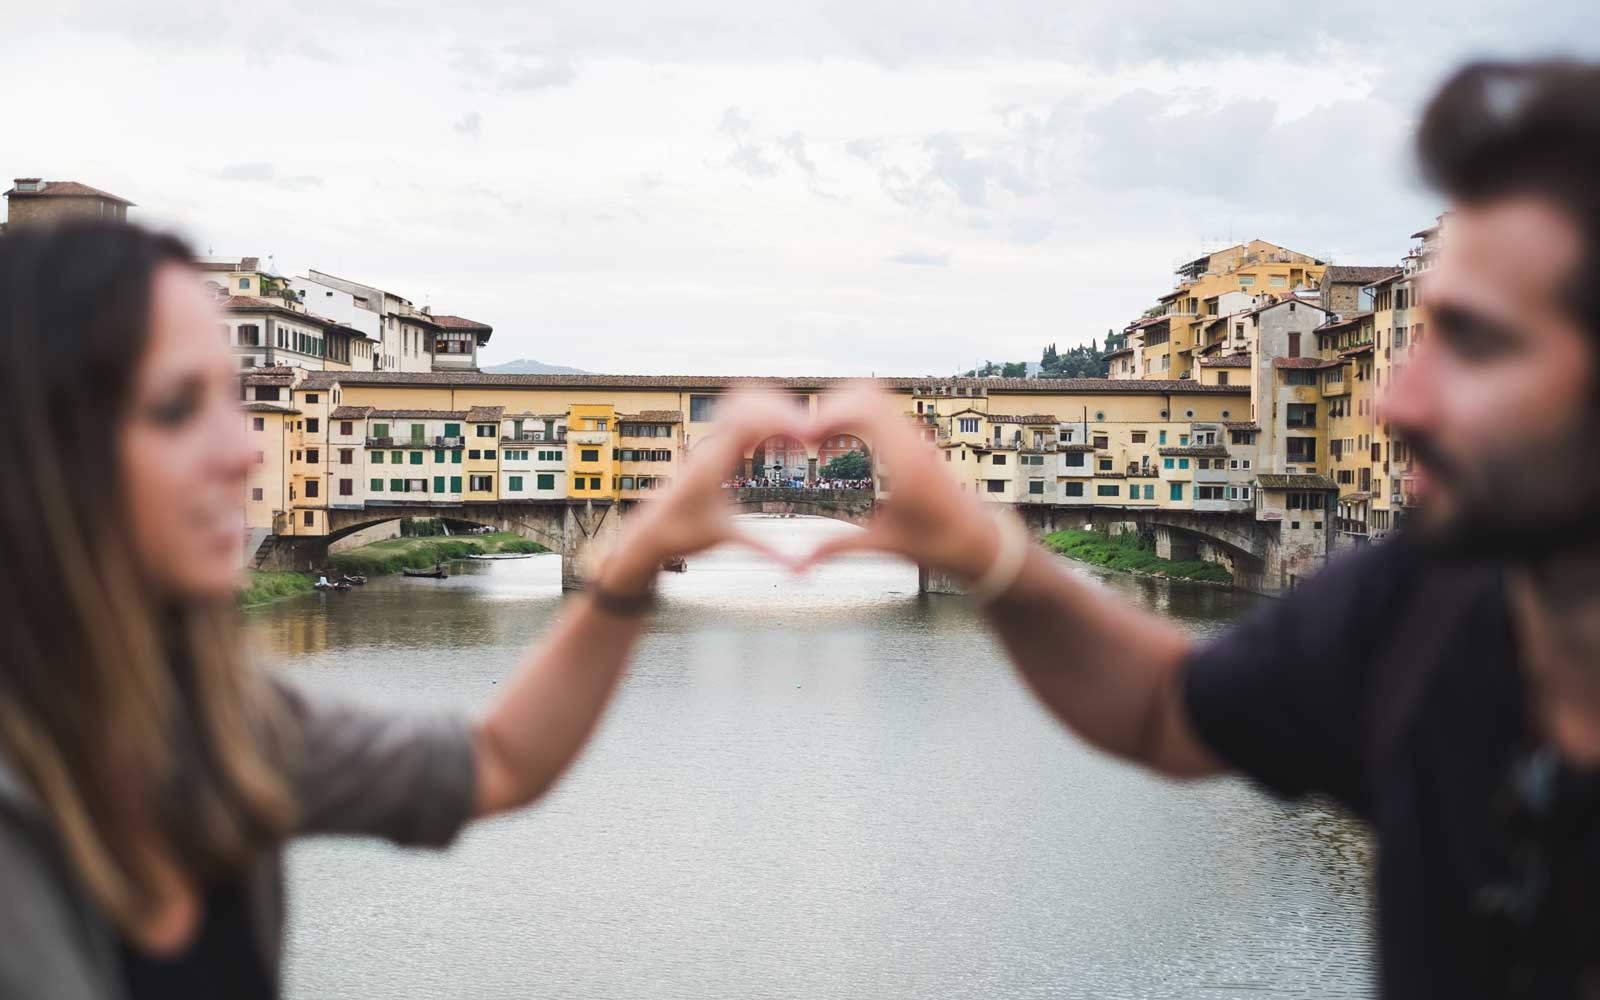 The Most Romantic Places to Get Engaged, According to Couples Who Have Done It